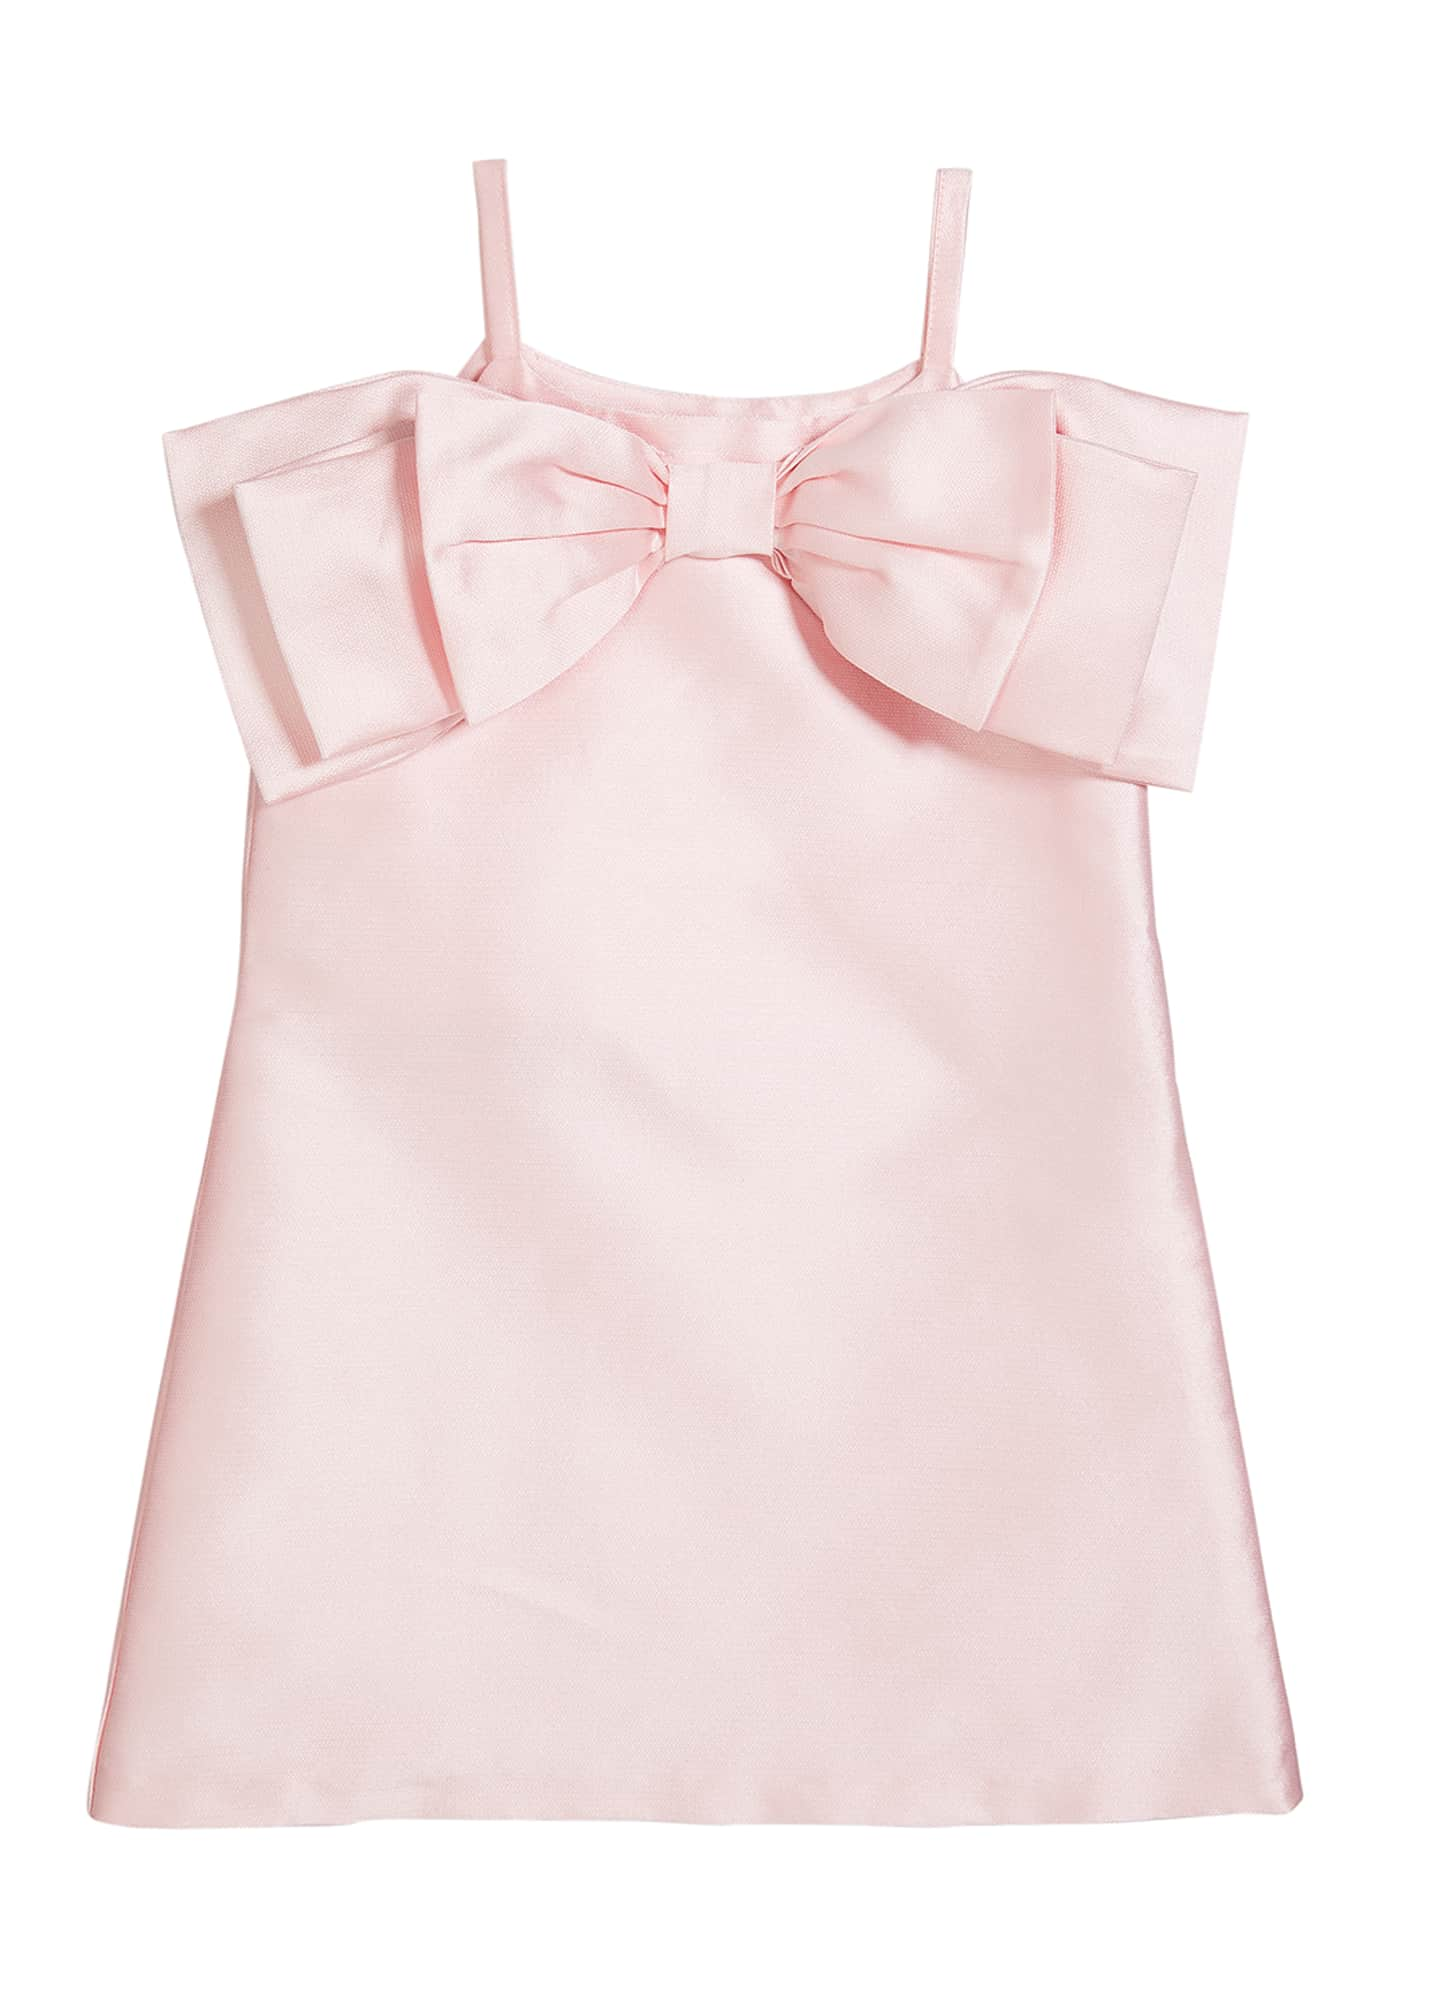 Girl's Big Bow Front Dress, Size 6-12